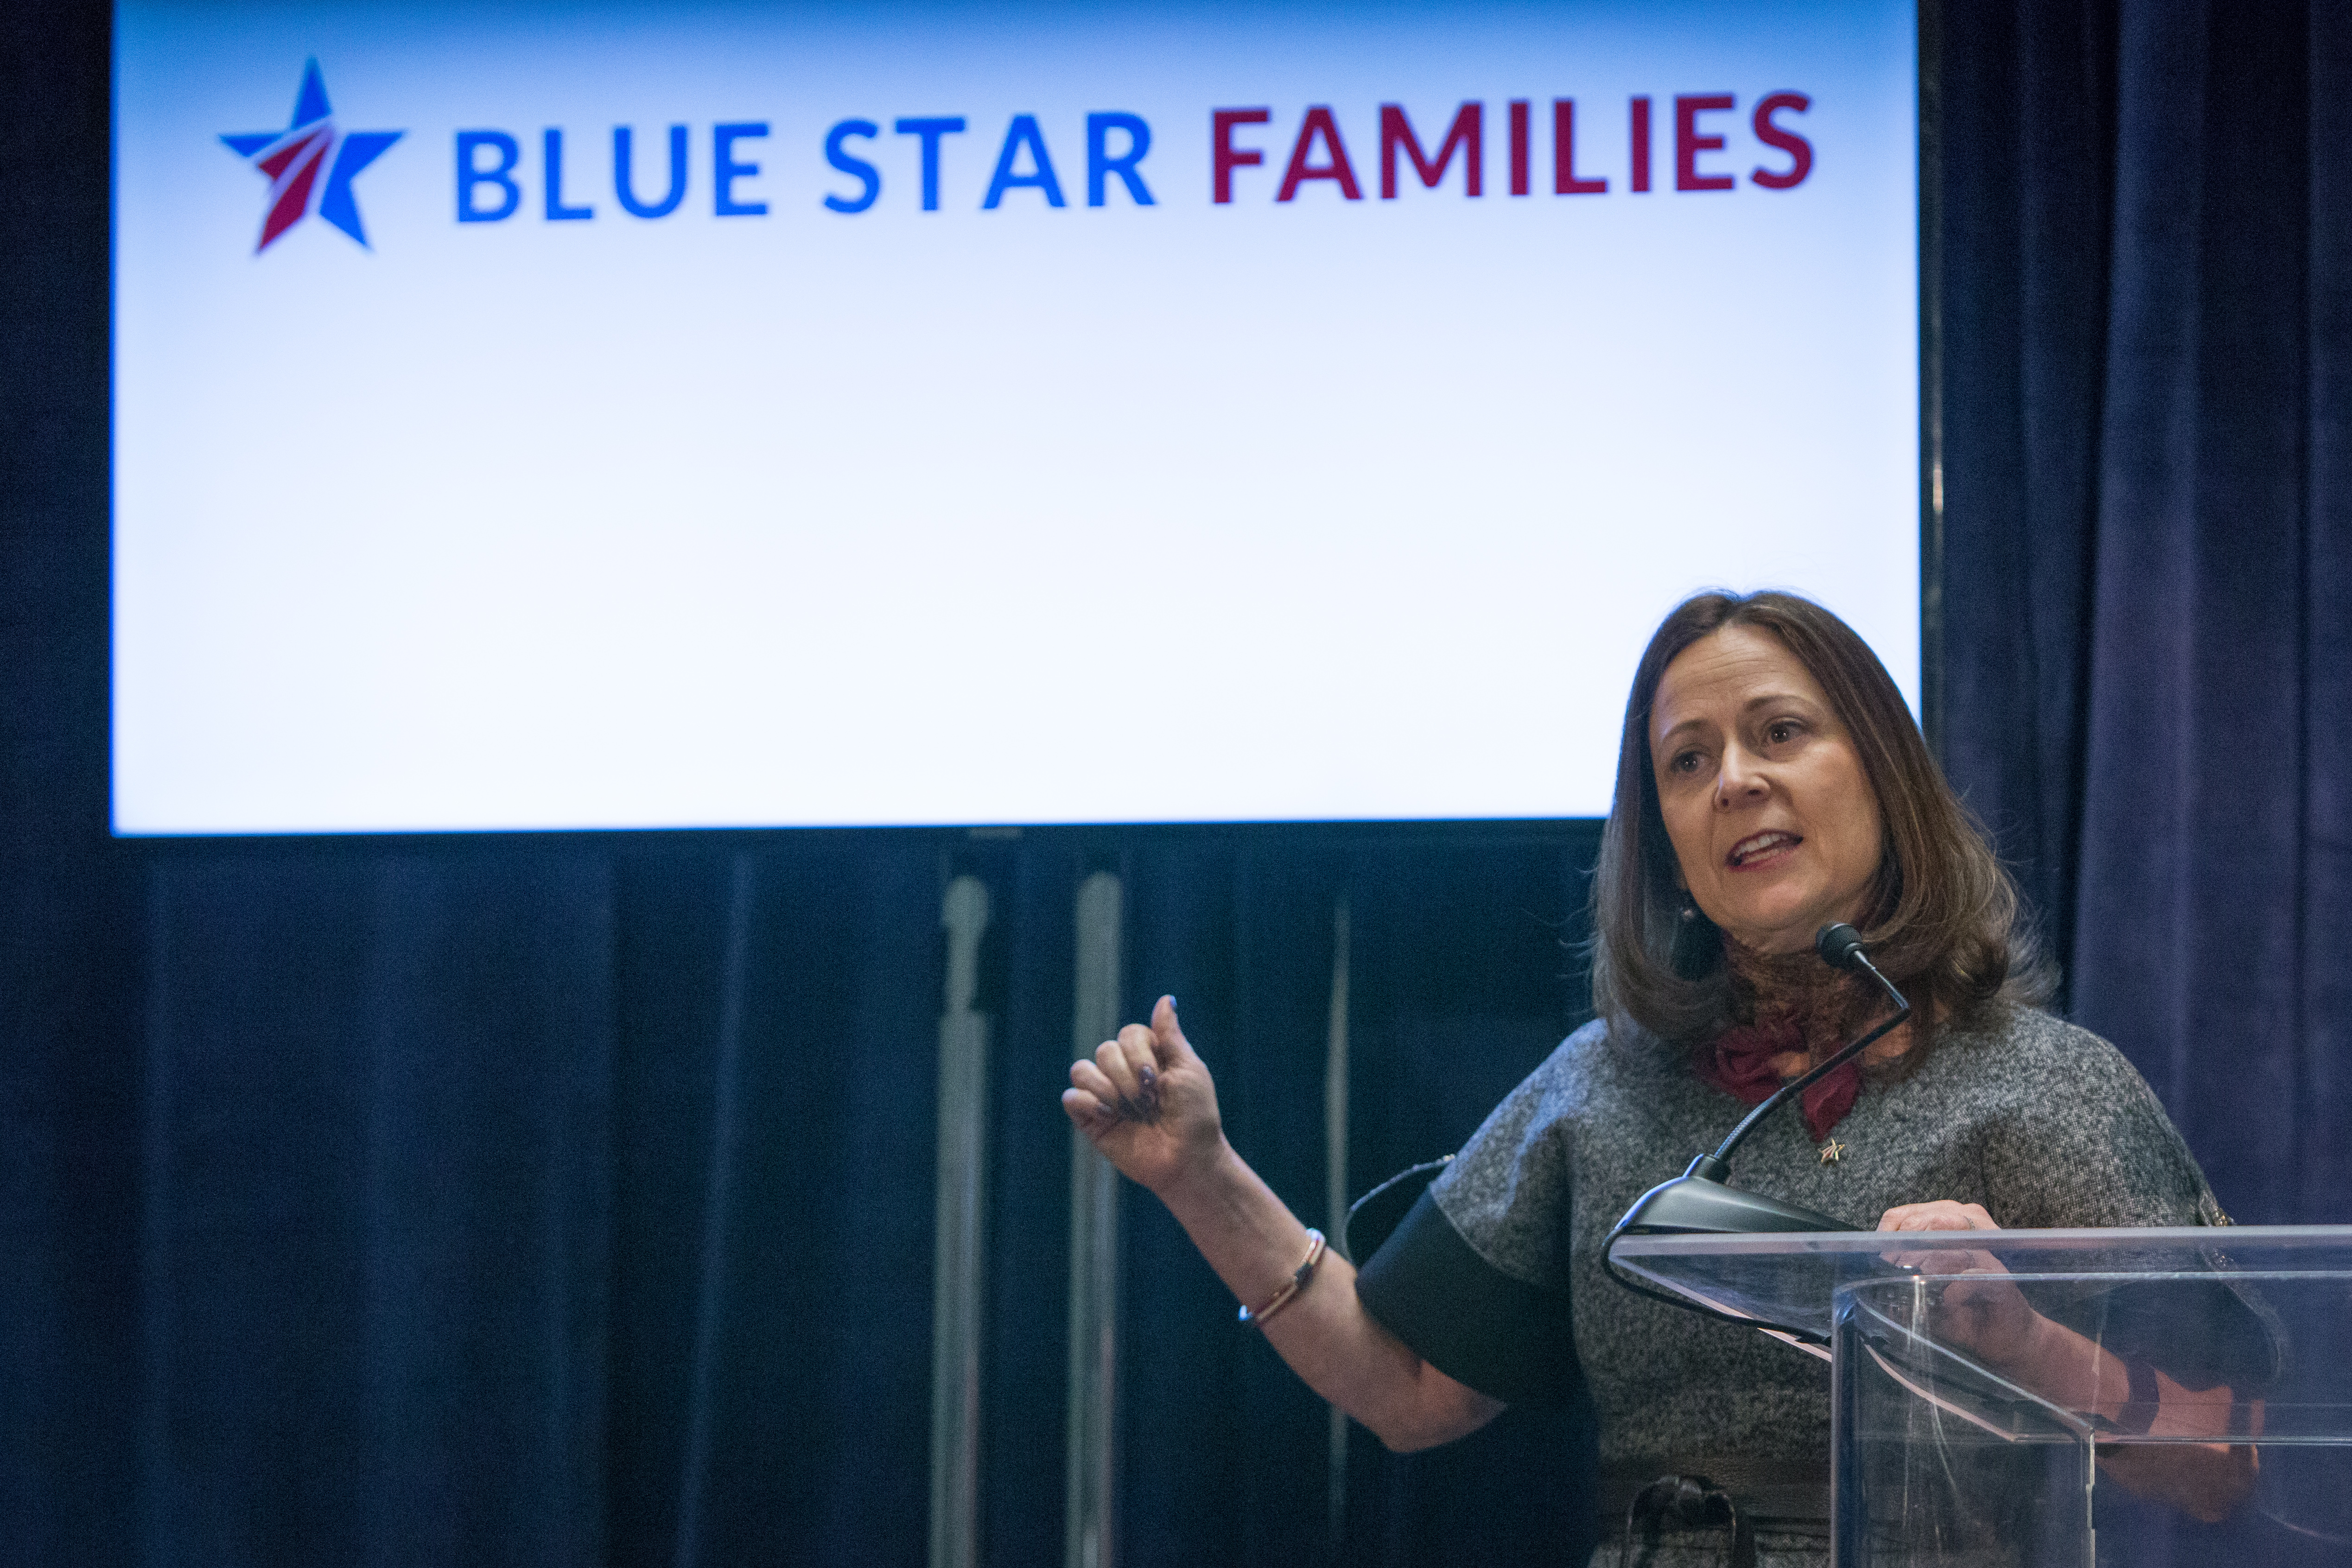 Kathy Roth Douquet, CEO of Blue Star Families | @BlueStarKRD